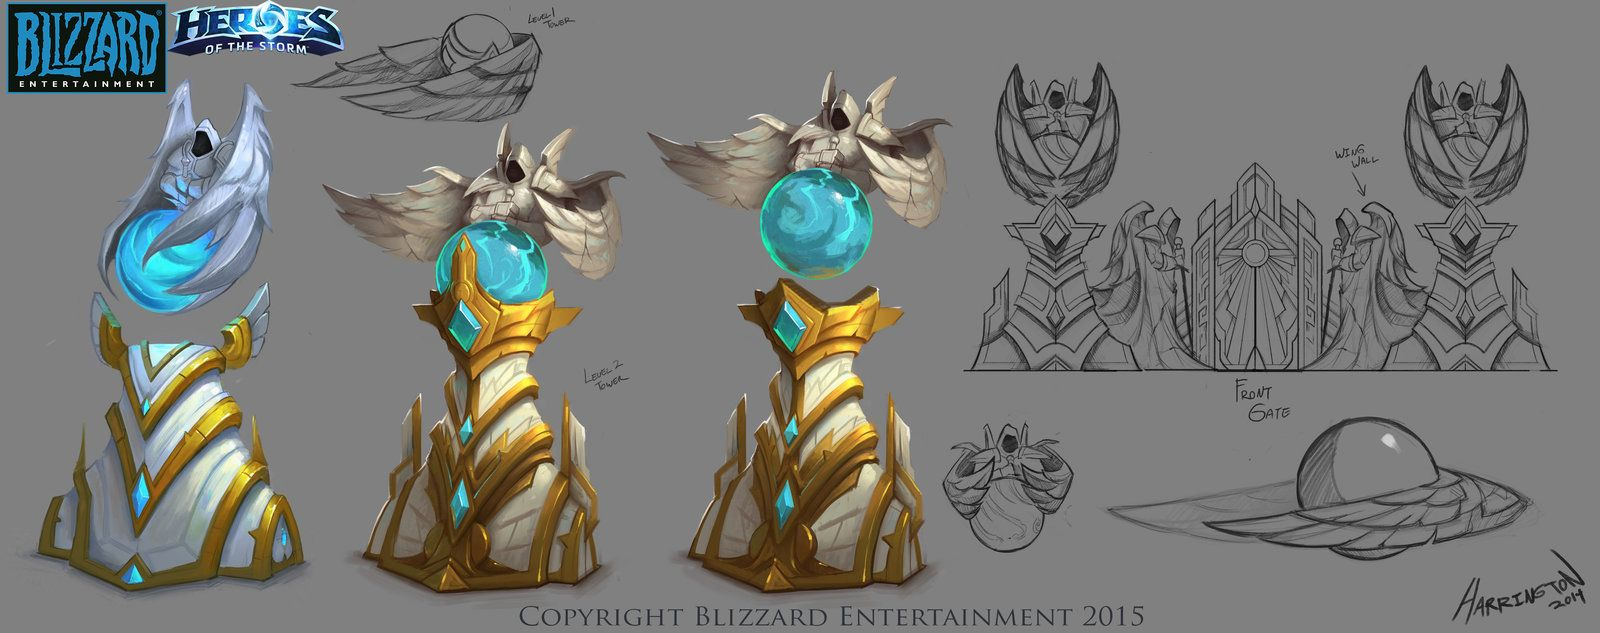 Heroes Of The Storm - Heaven Tower Concept, David Harrington on ArtStation at https://www.artstation.com/artwork/heroes-of-the-storm-heaven-tower-concept